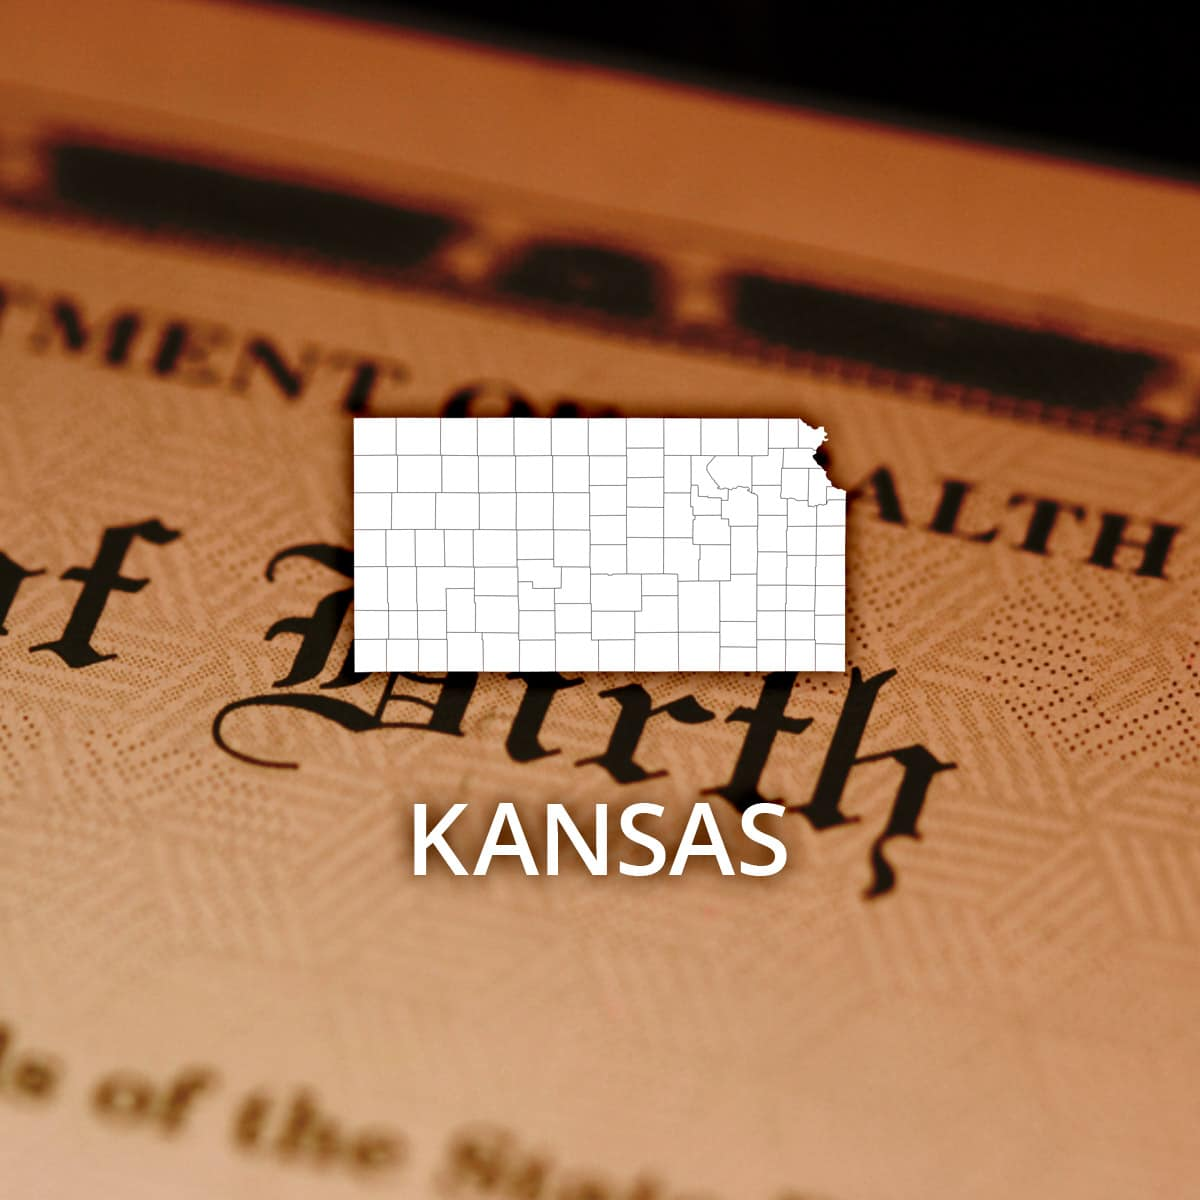 Where To Obtain A Kansas Birth Certificate